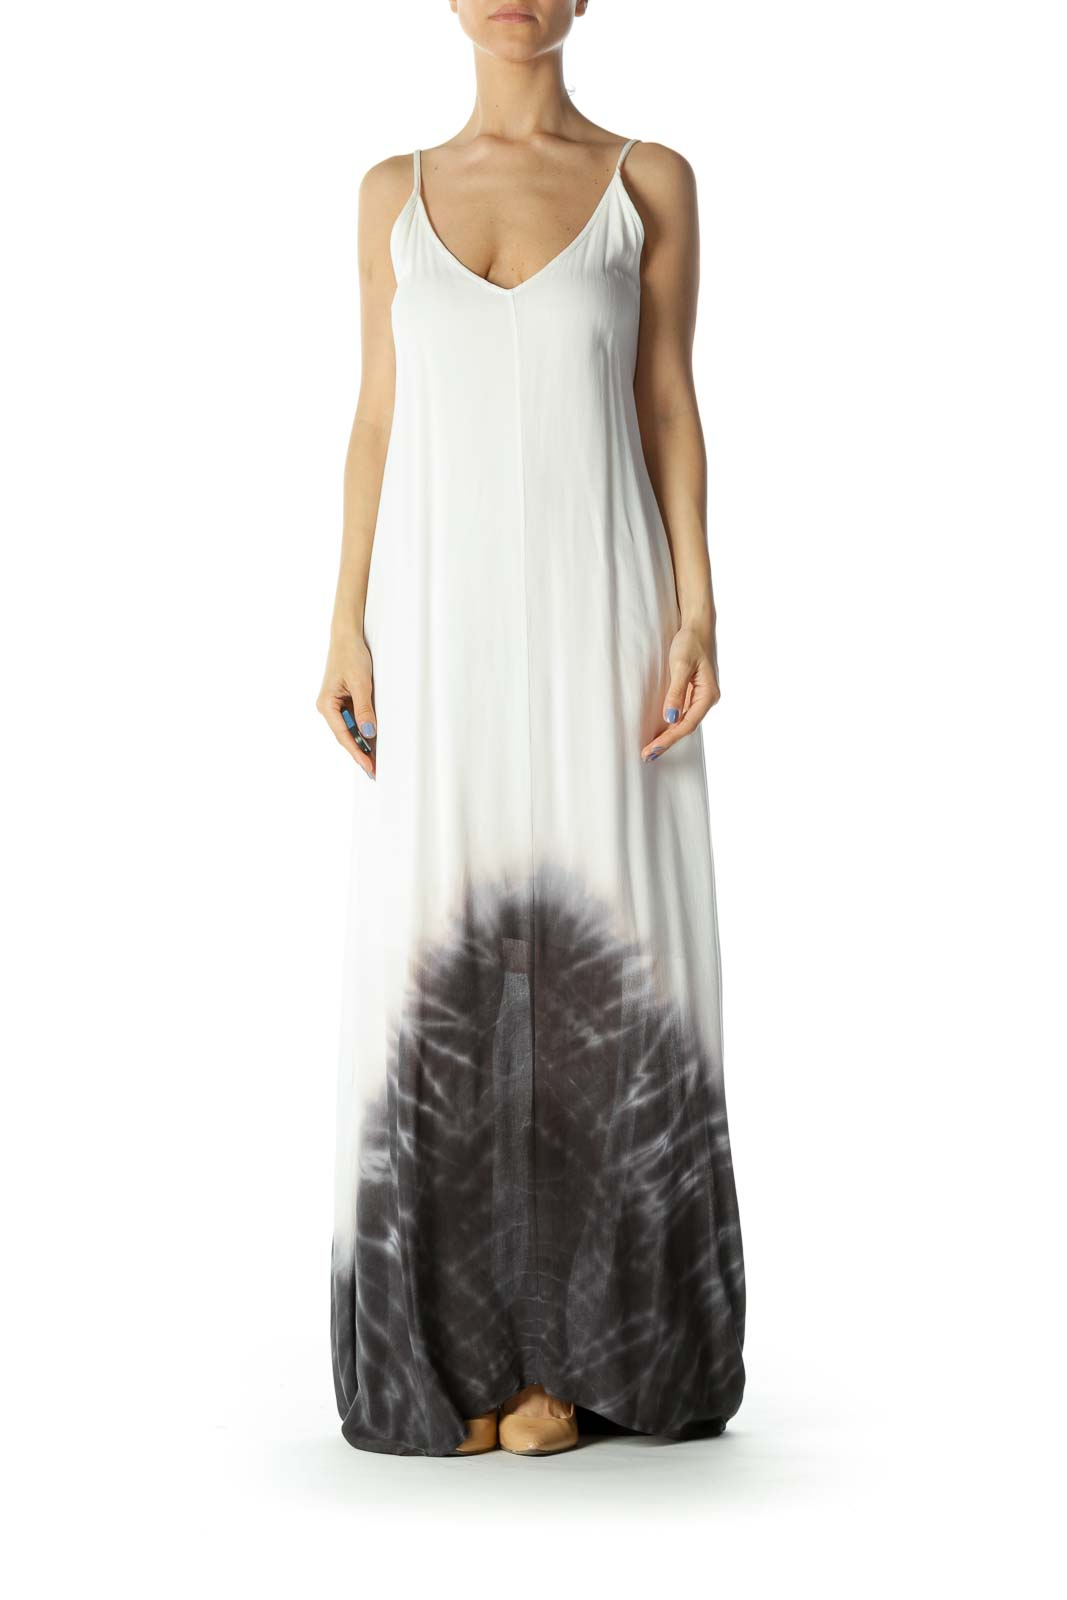 Cream/Gray Tie-Dye Print V-Neck Lined Maxi Dress